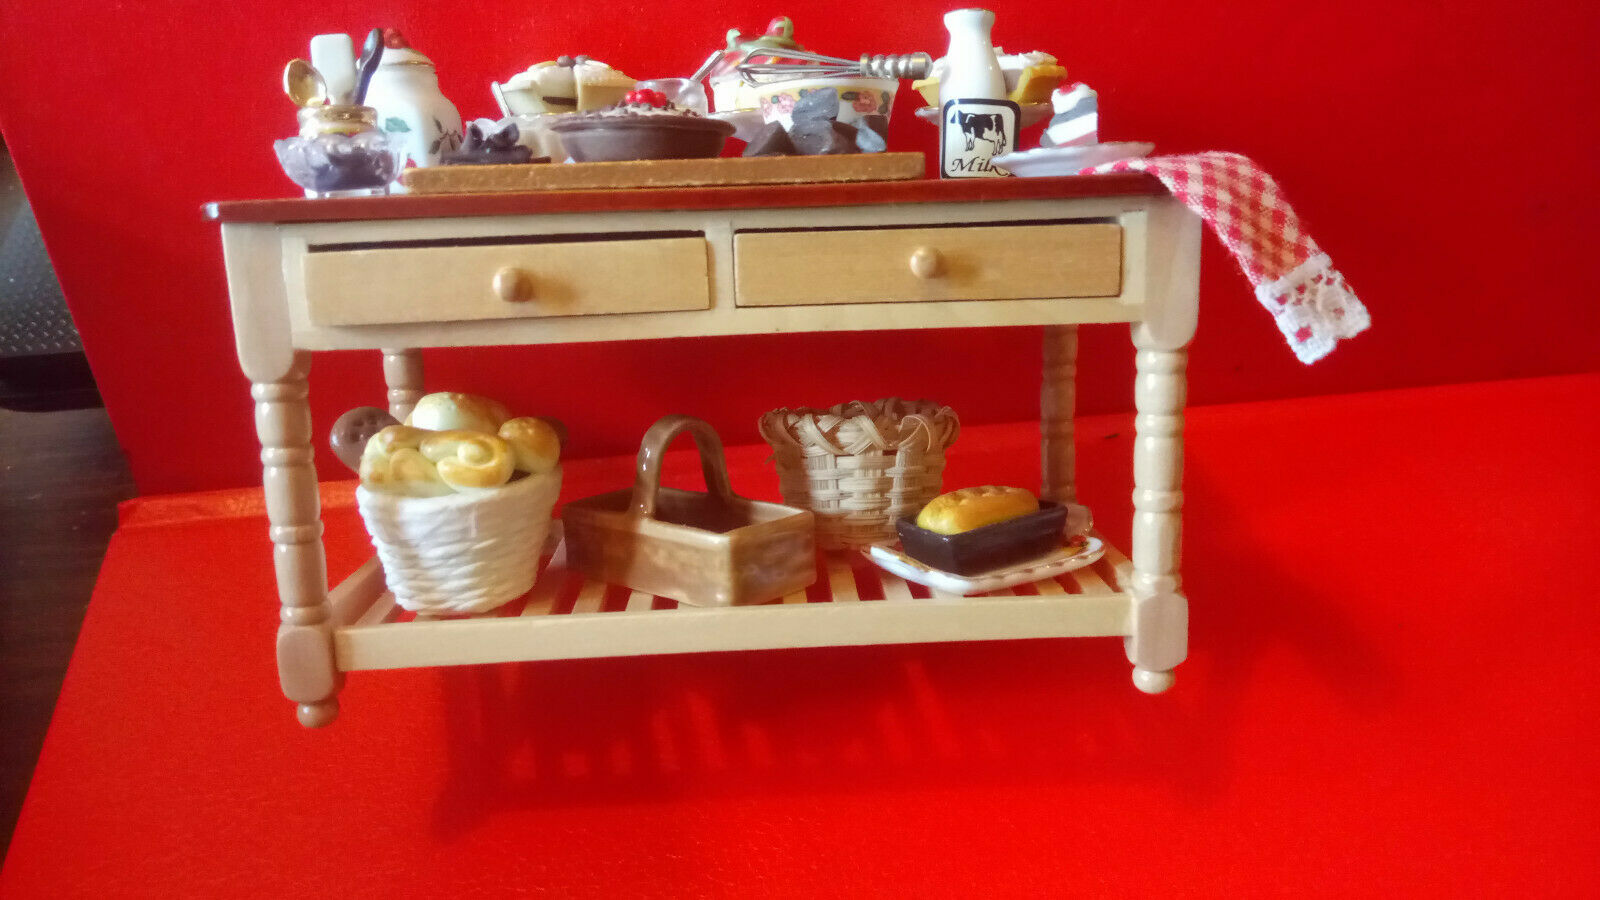 Dolls House accessories Reutters Porcelein, Buffet Table with accessories